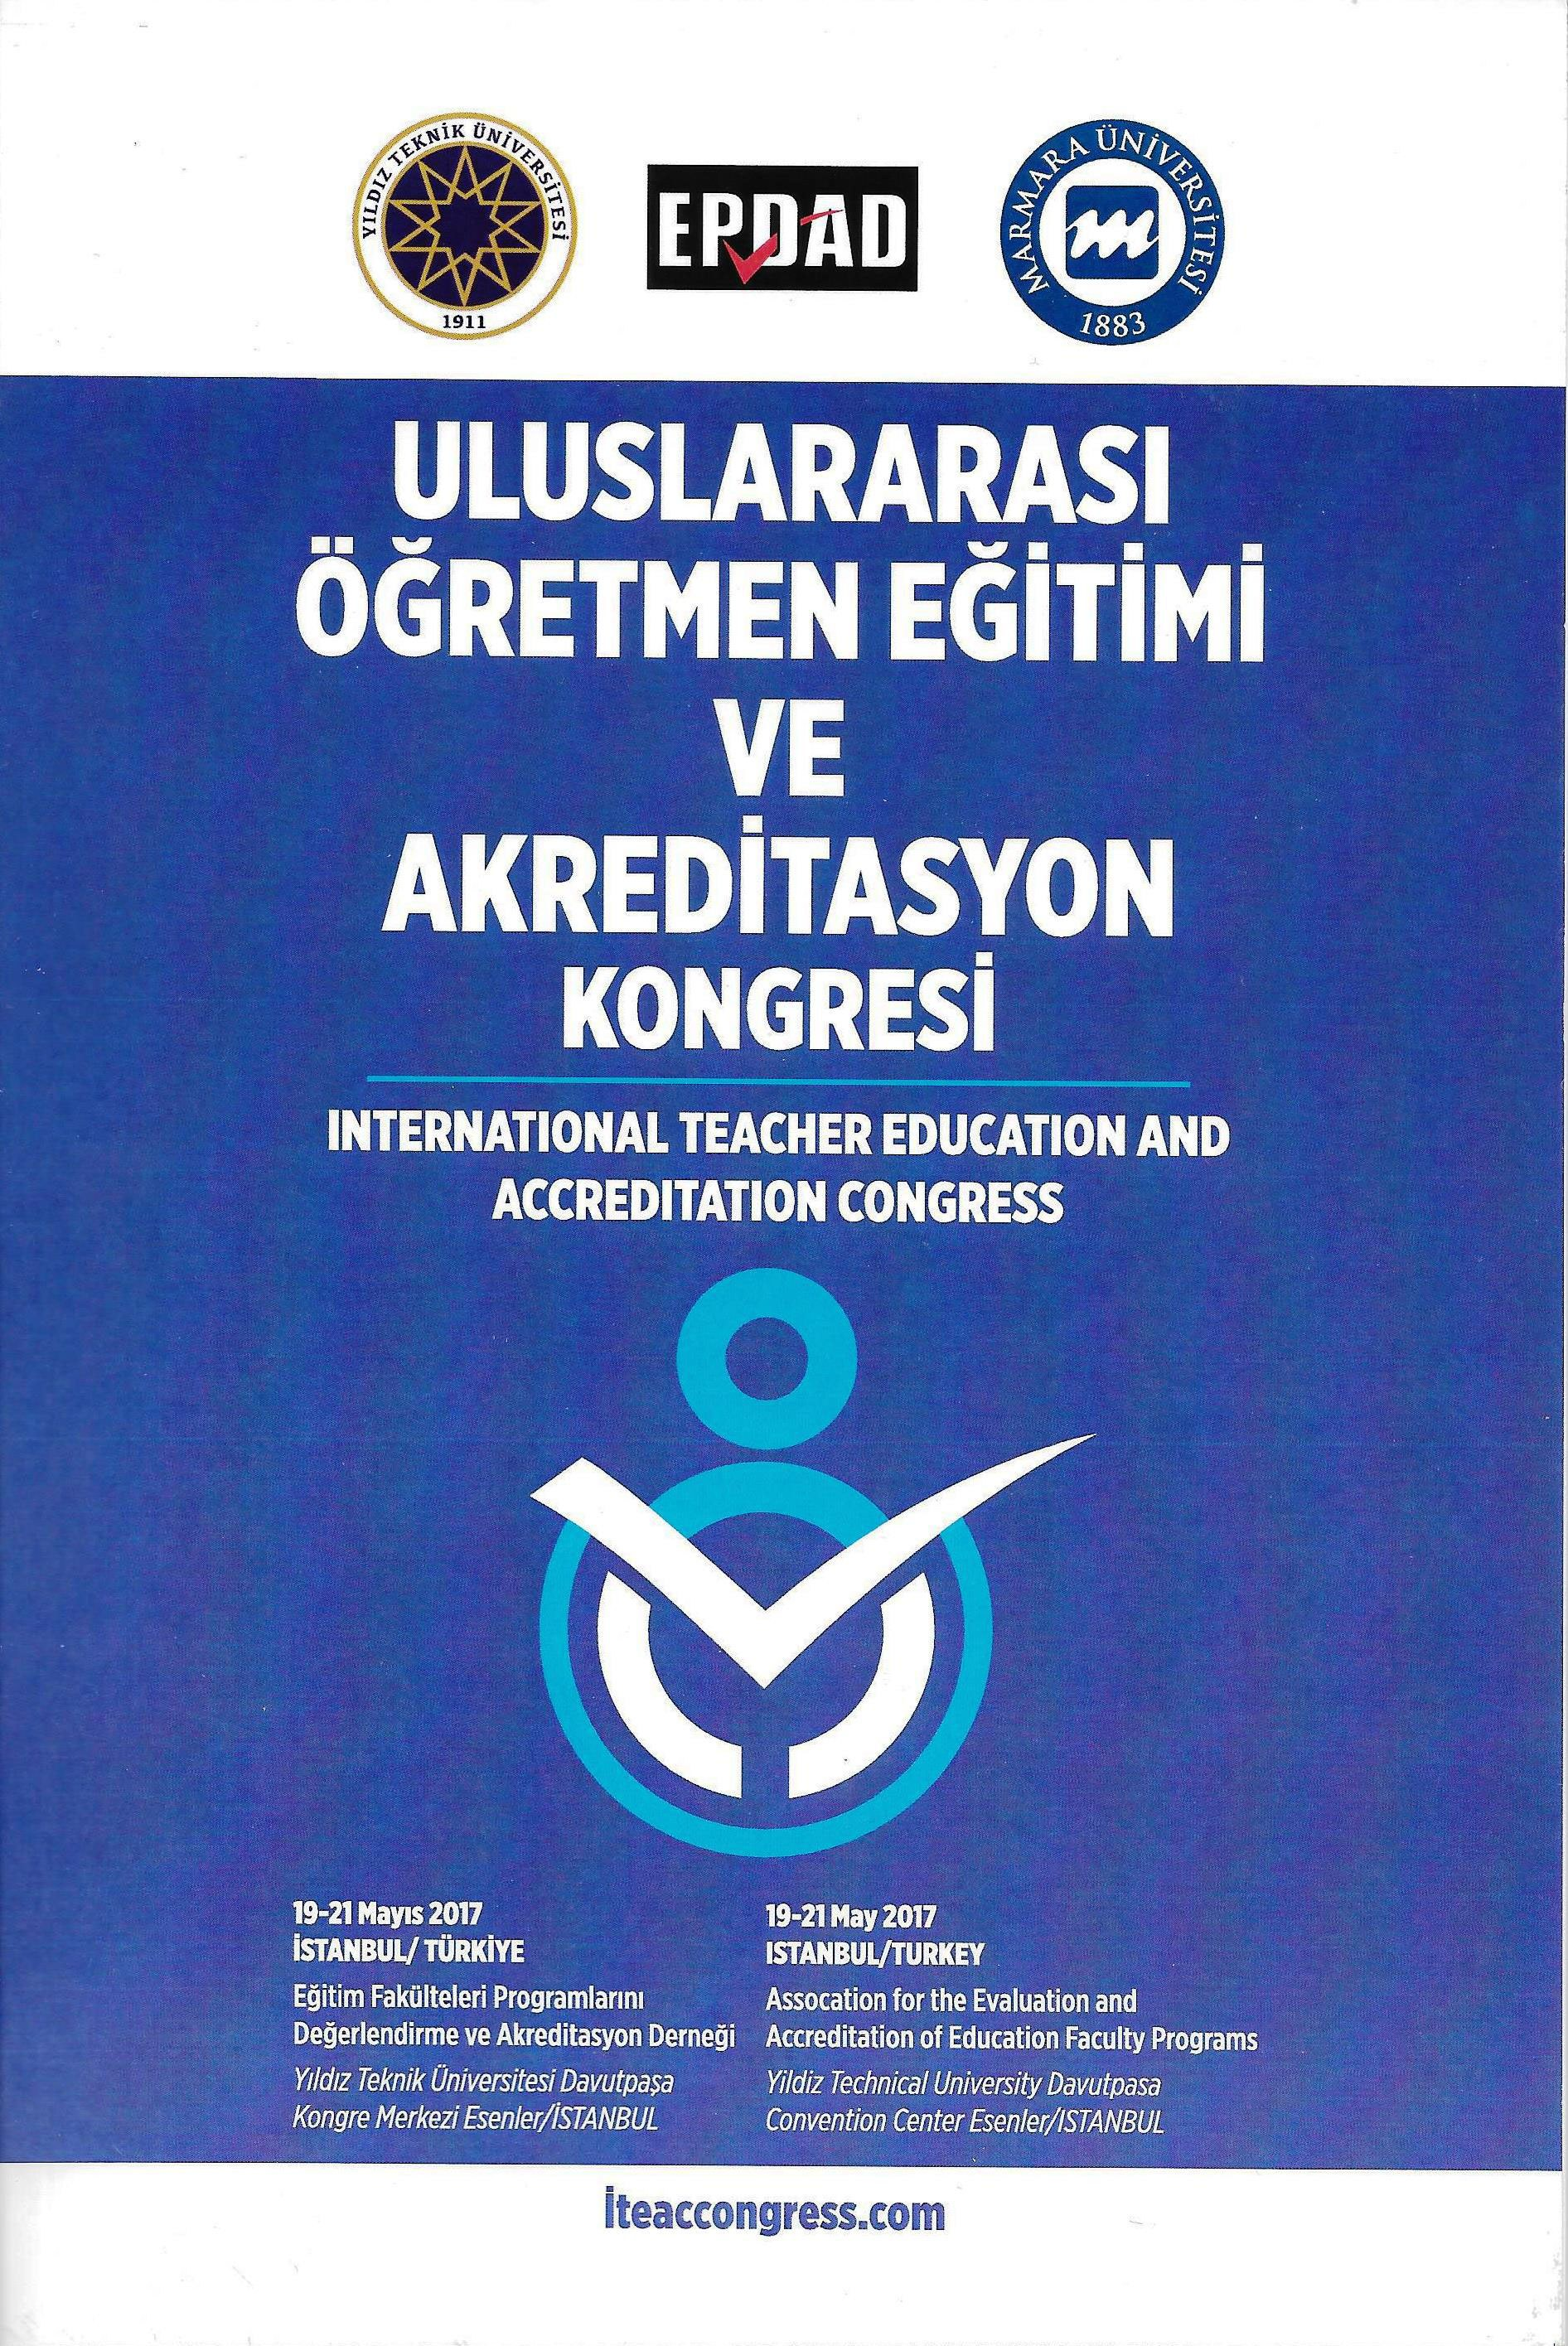 International Teacher Education and Accreditation Congress (ITEAC) 2017 Bildiri Özetleri